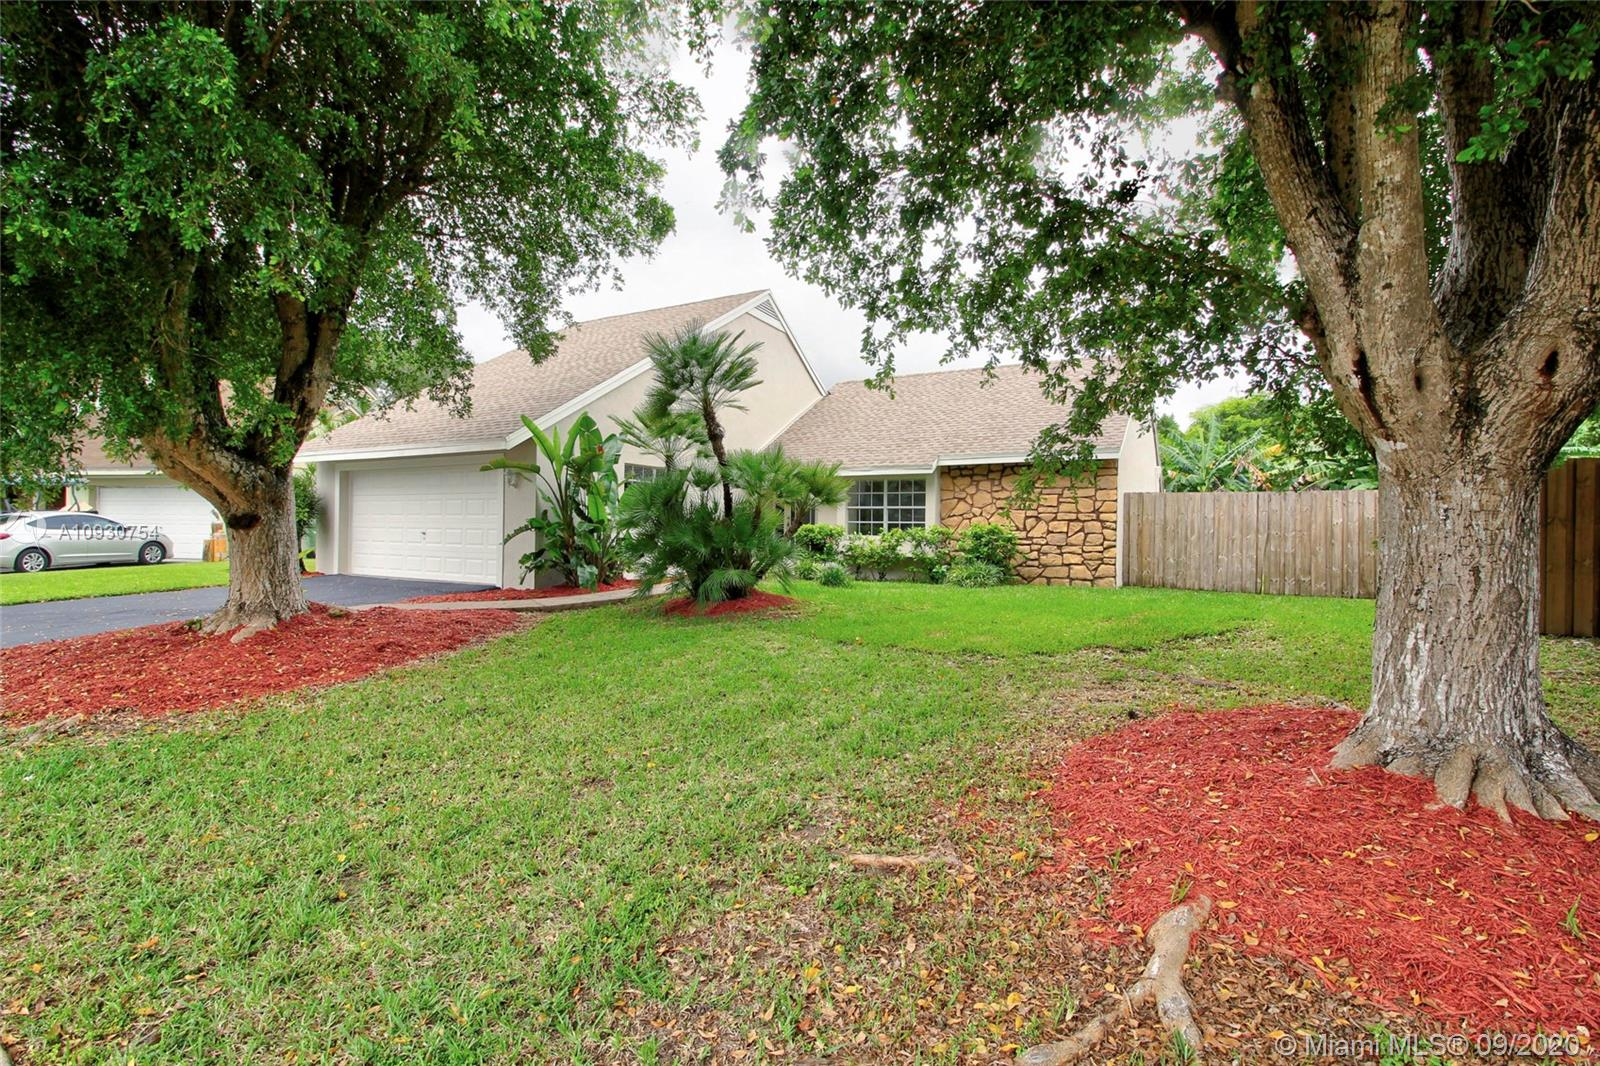 1551 N Goldeneye Ln Property Photo - Homestead, FL real estate listing